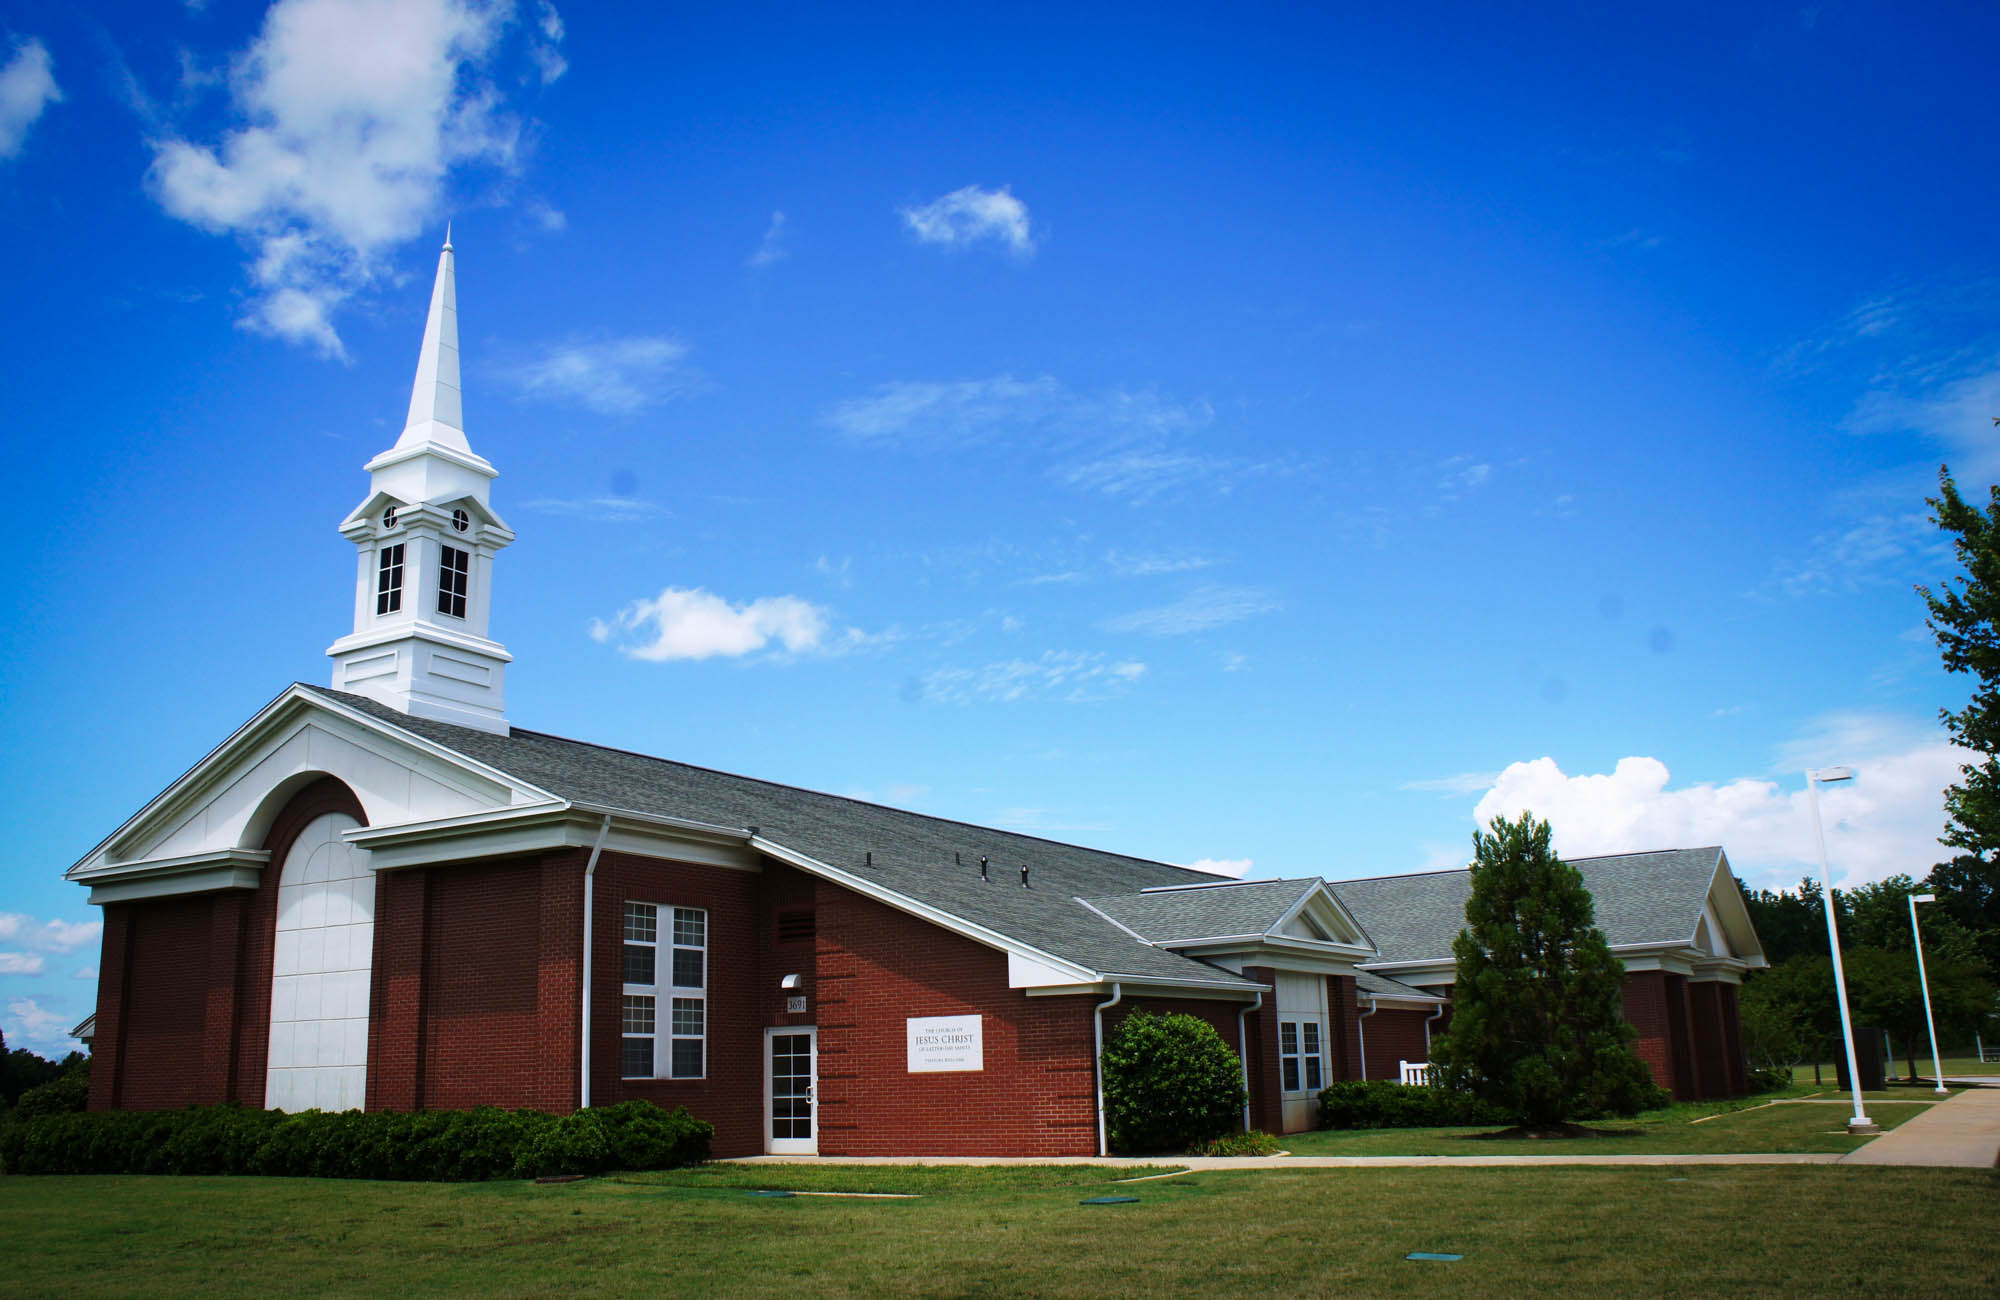 Boiling Springs LDS Church